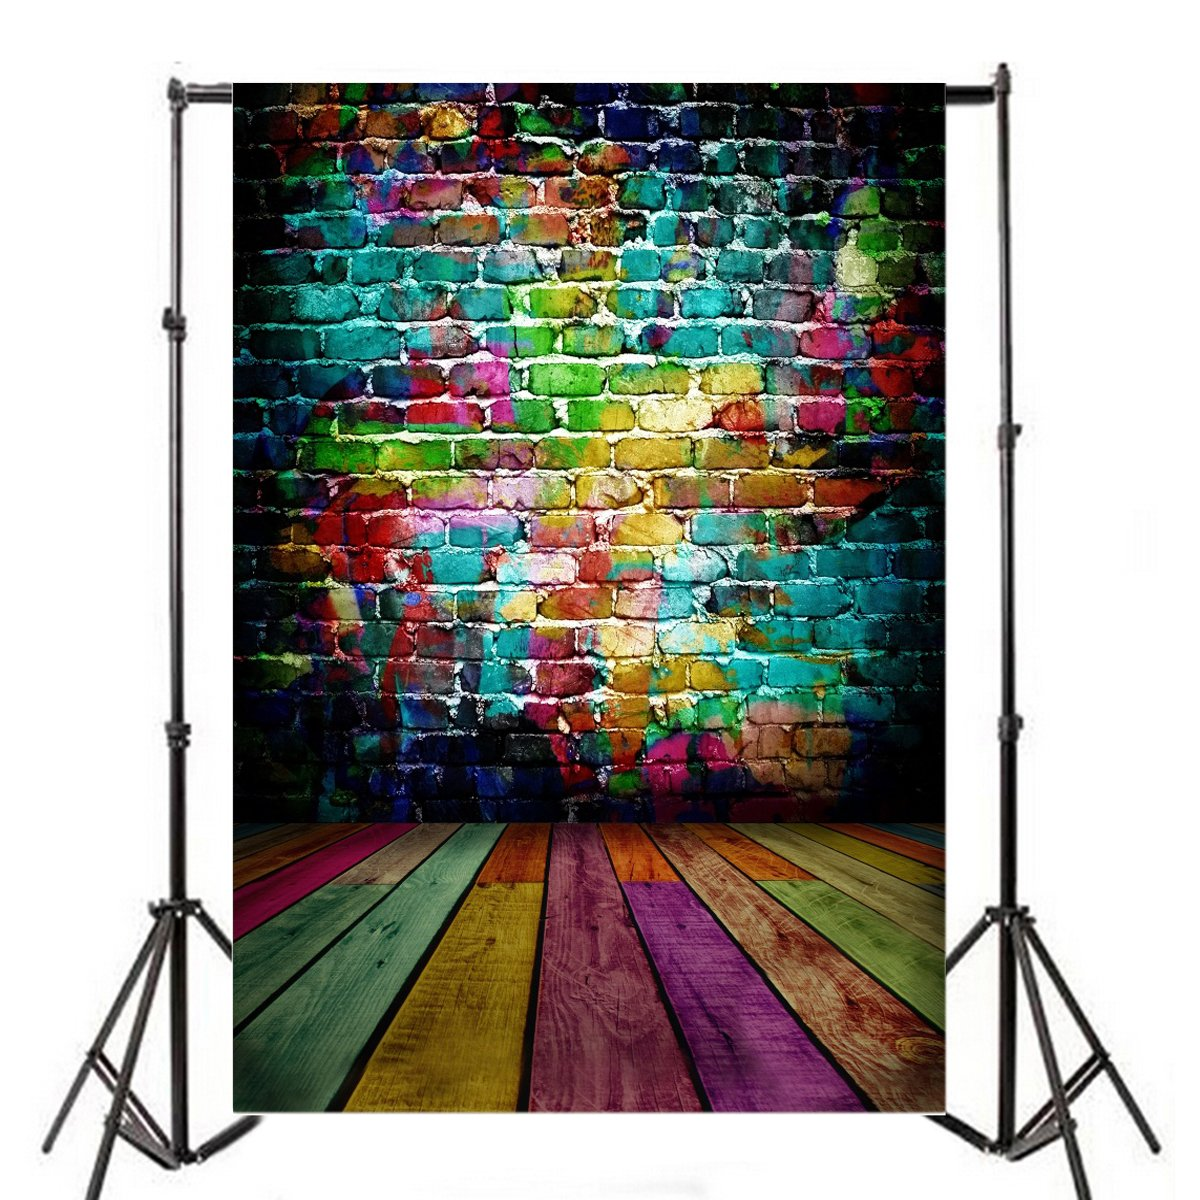 LFEEY 5x7ft Portrait Backdrop Wooden Floor Graffiti Brick Wall Backgrounds for Photography Photo Studio Prop for Rock Style Party, Hip Hop